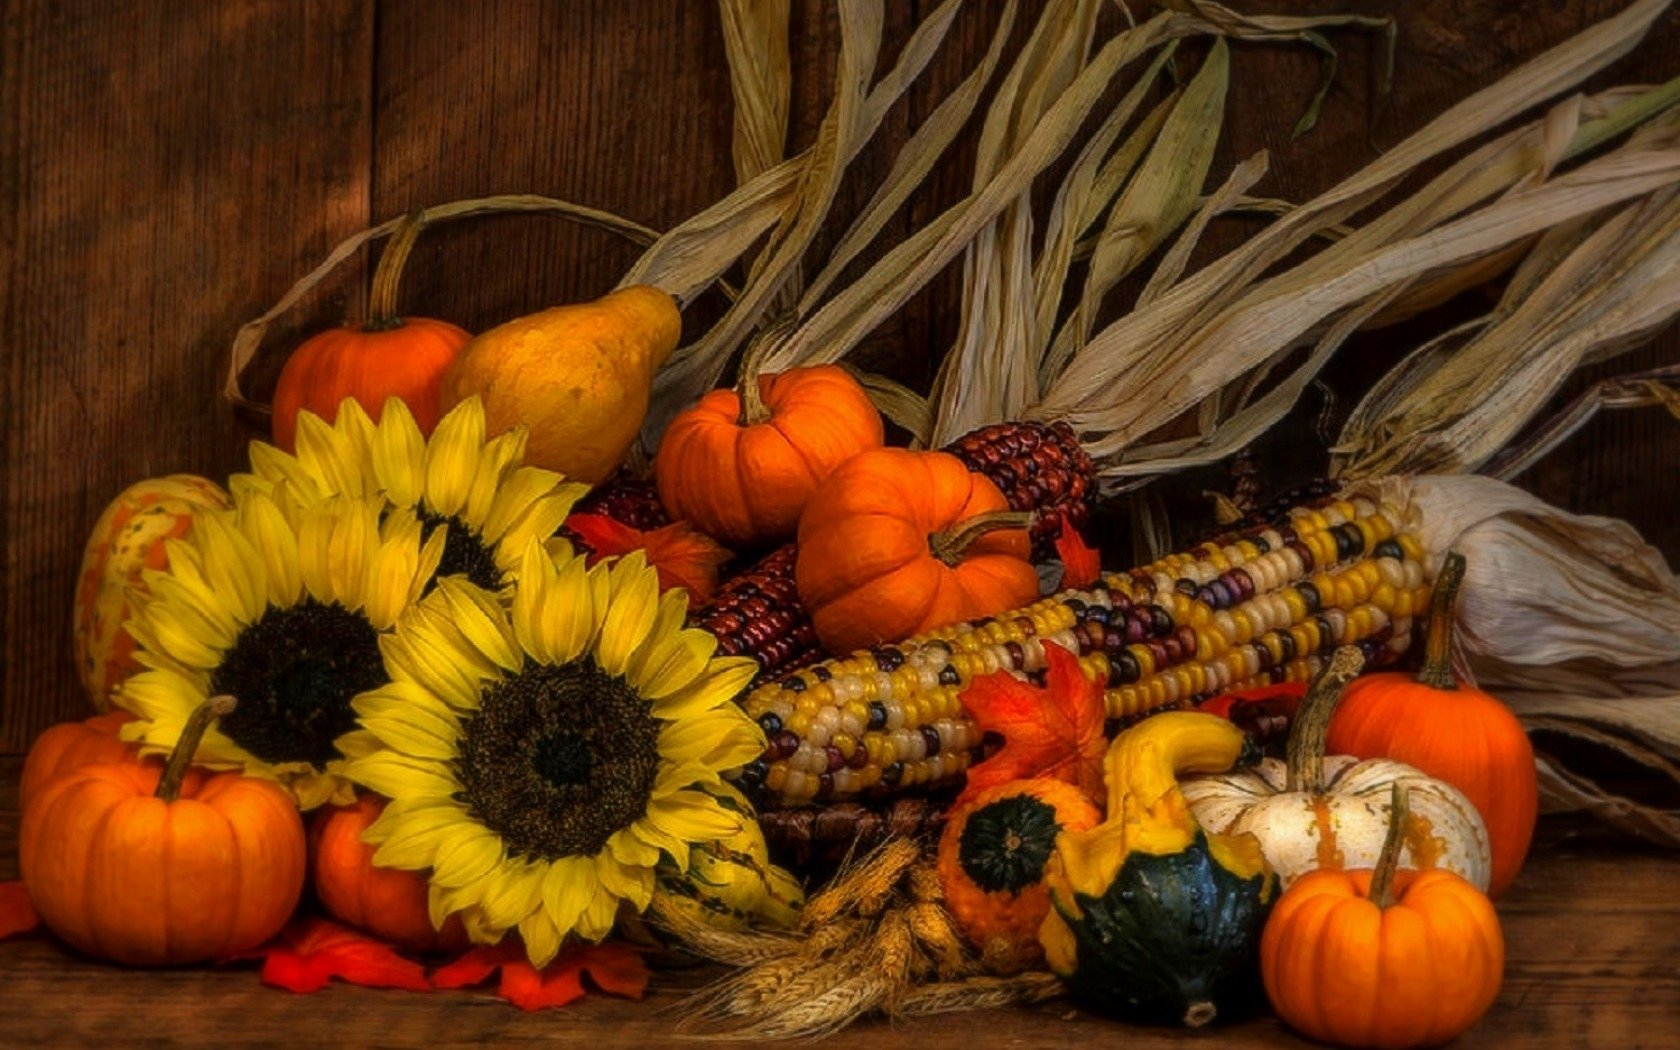 Free Animated Fall Desktop Wallpaper Autumn Still Life Wallpaper And Background Image